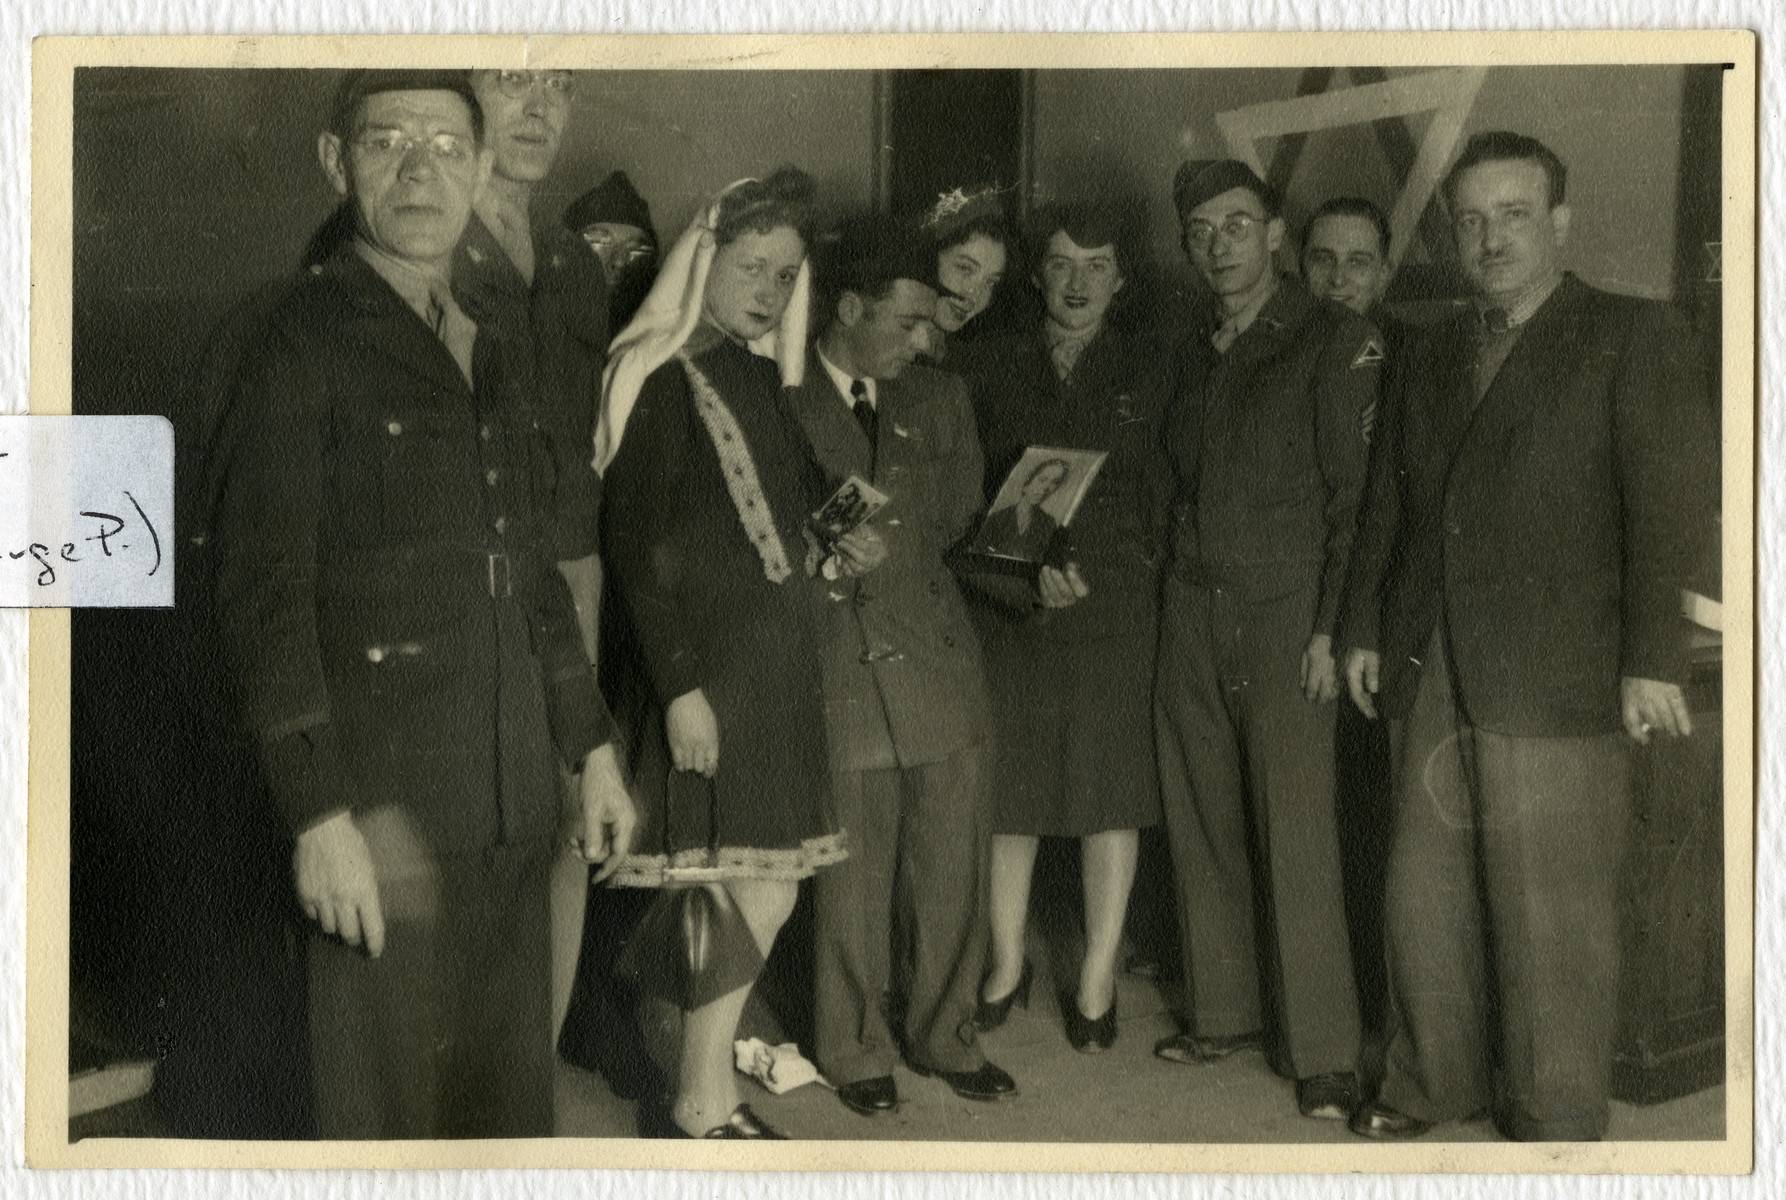 Mr. and Mrs. Pressman hold the photographs of relatives who perished during their wedding in the Stuttgart dsiplaced persons camp.  Cantor Moses Rontal is standing on the far right.